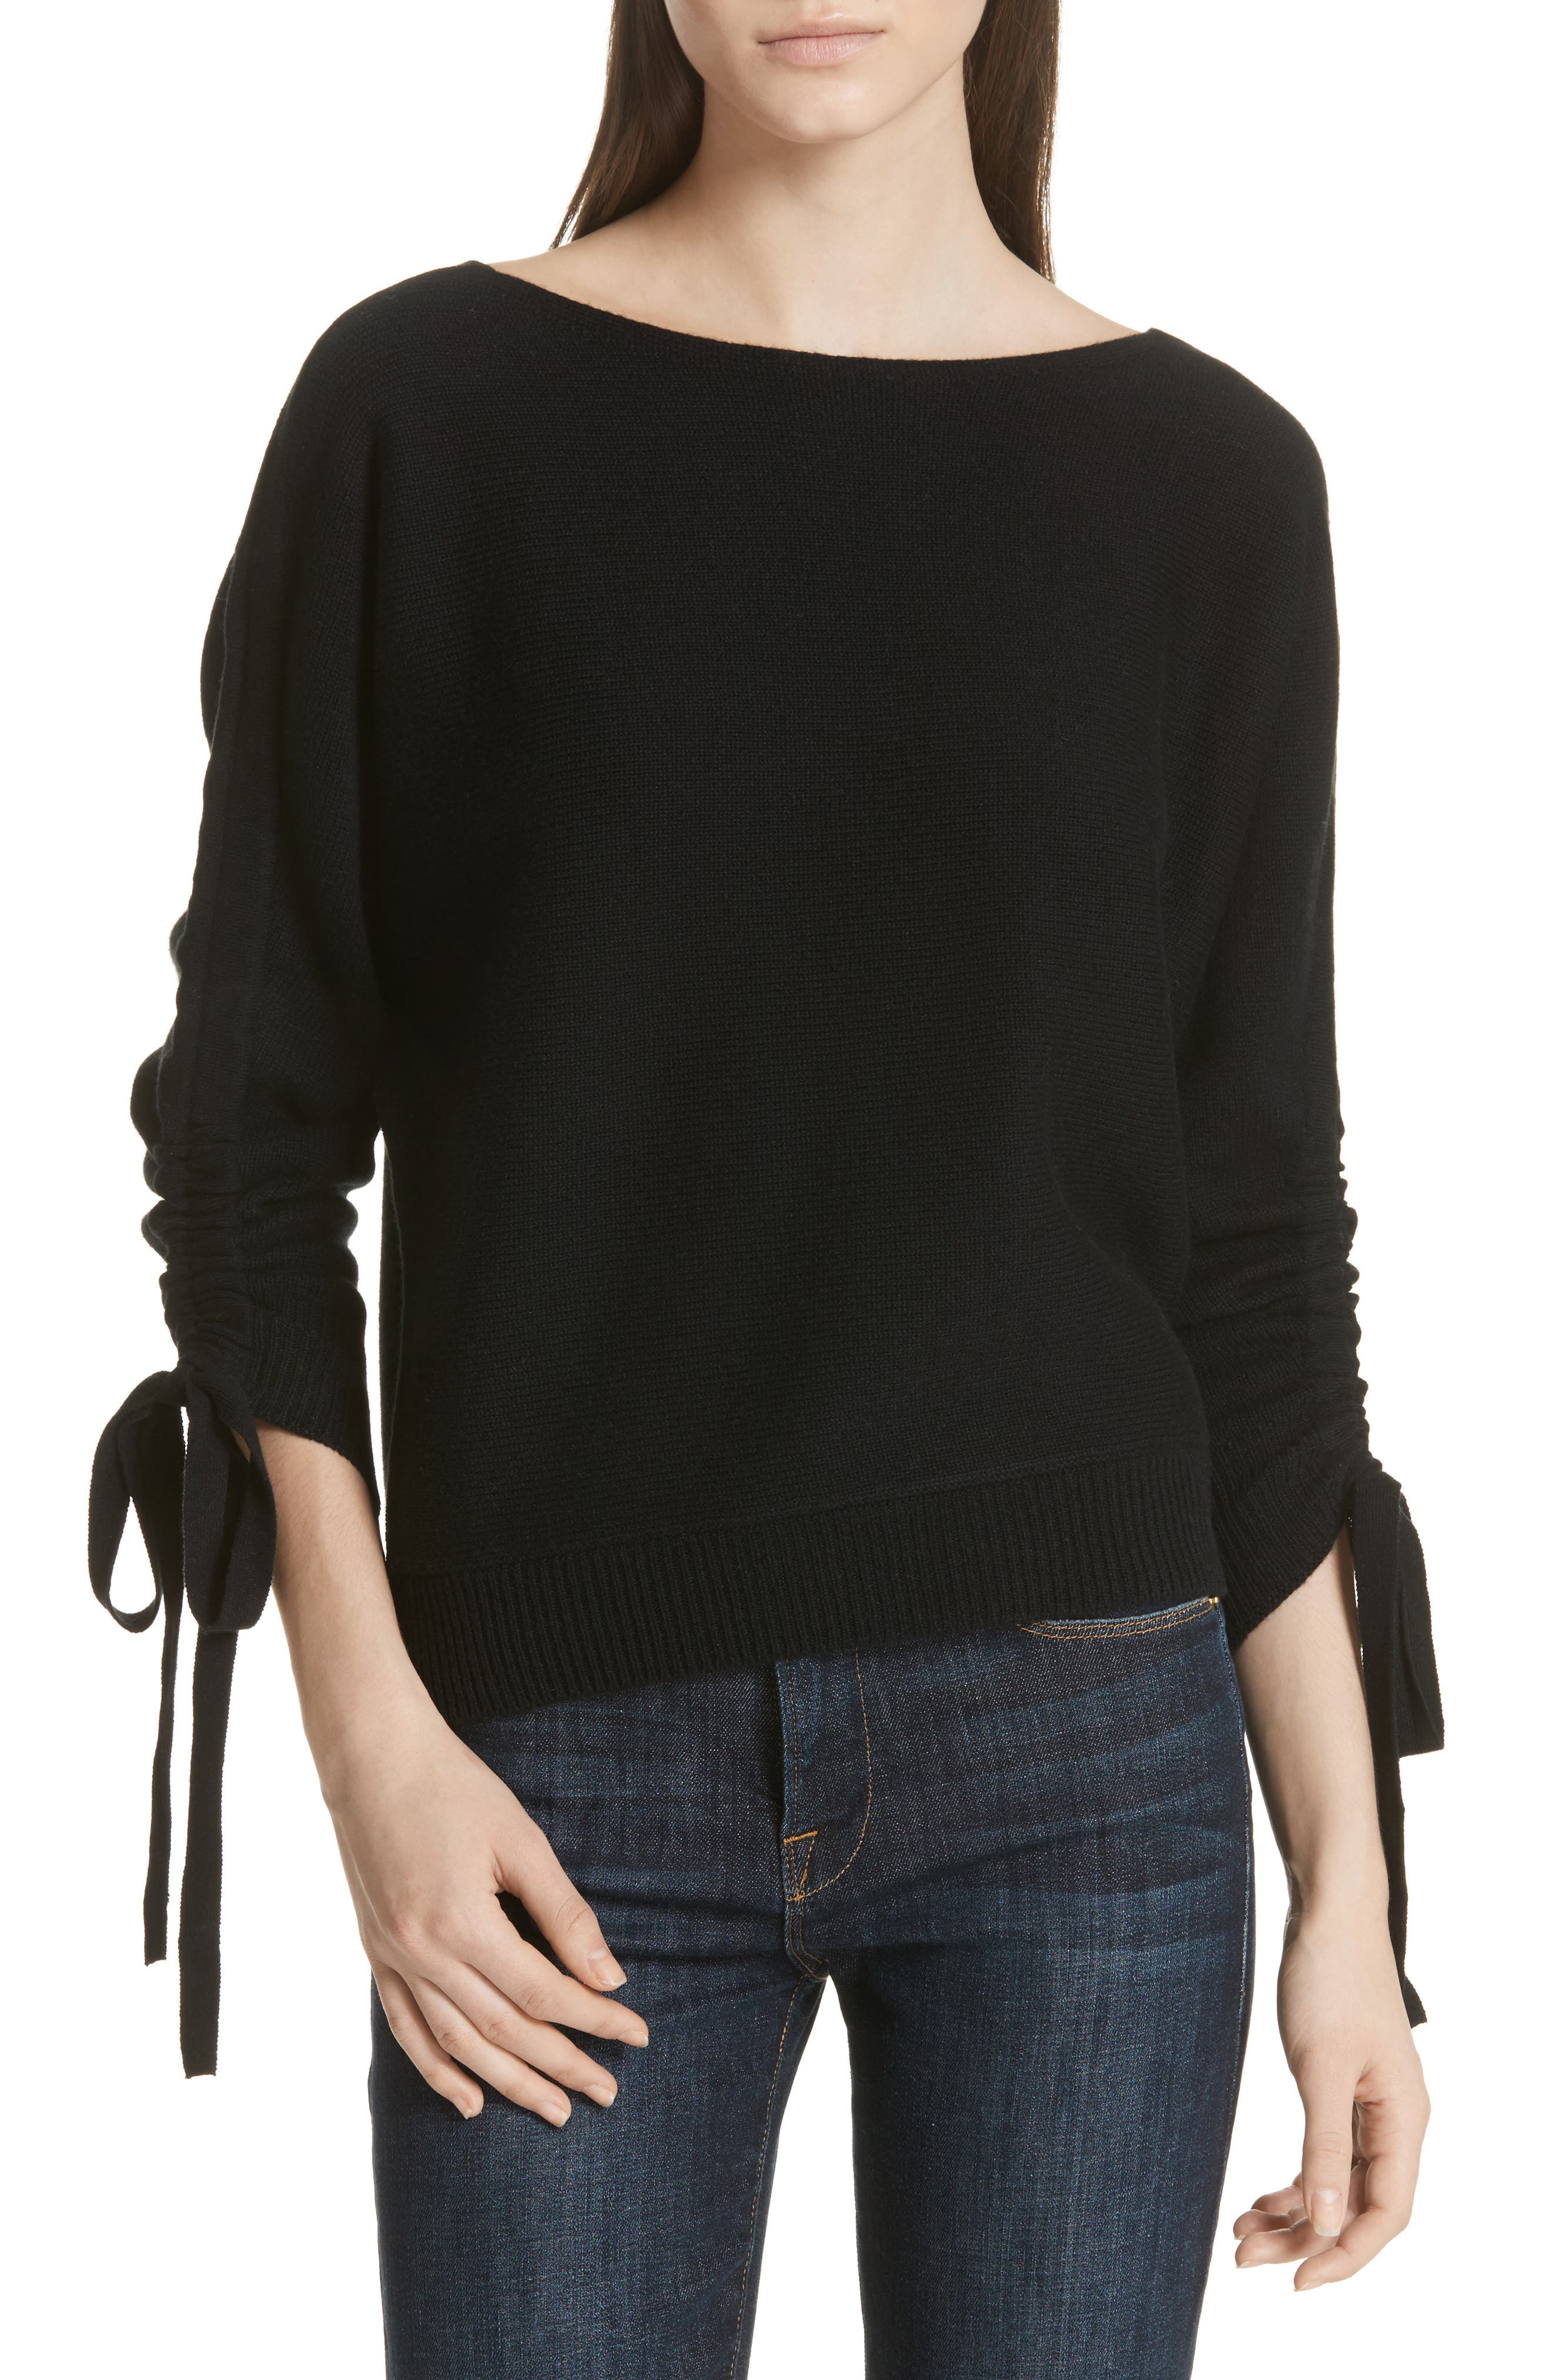 Alternate Image 1 Selected - Joie Dannee Wool & Cashmere Sweater